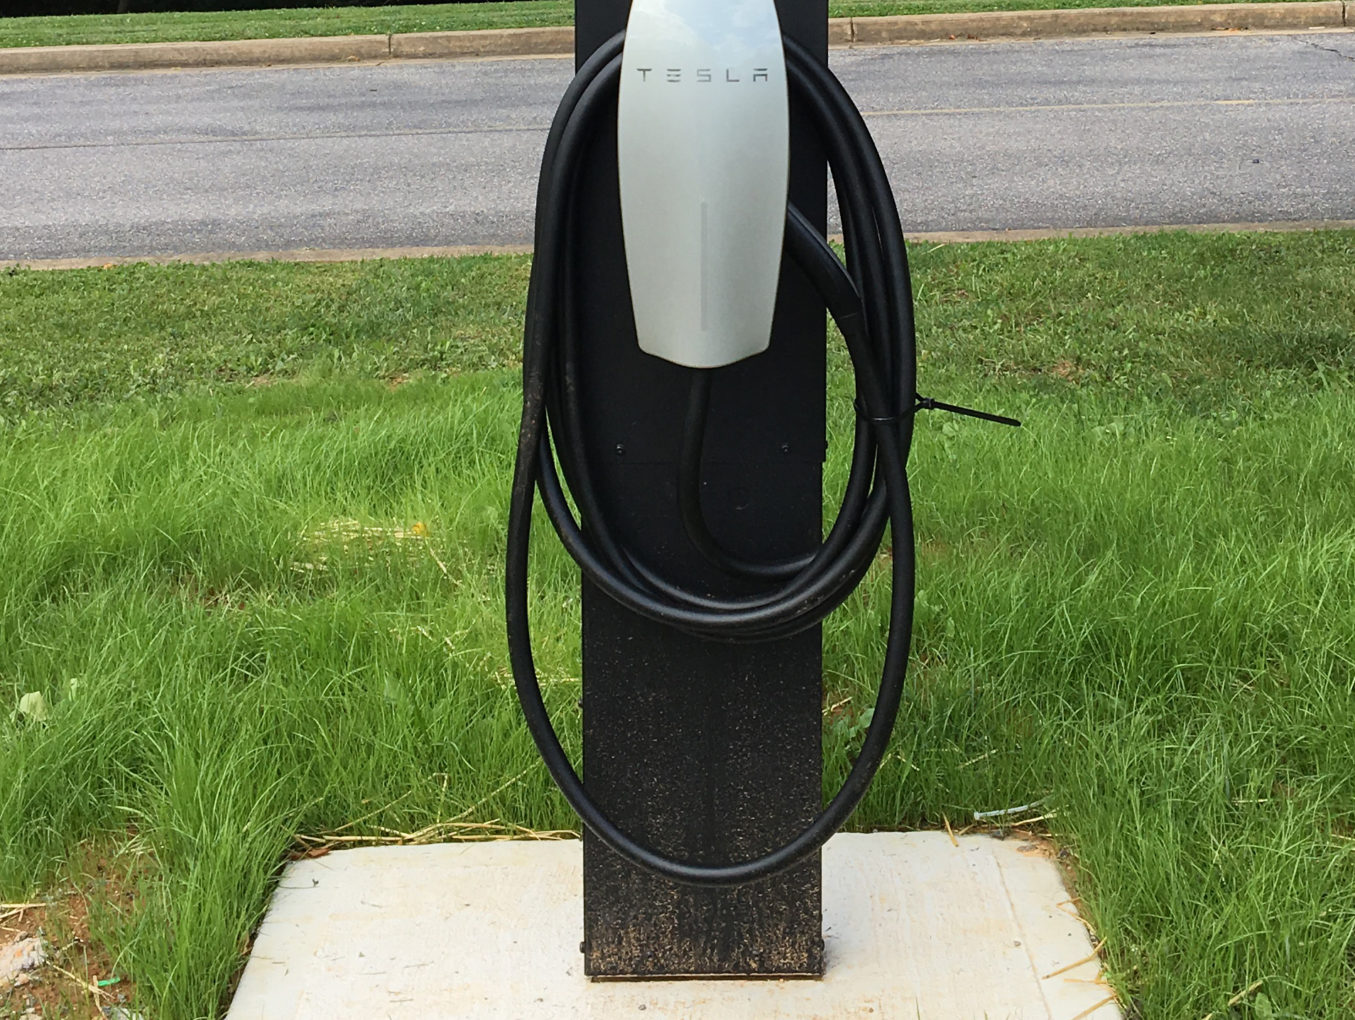 We now offer Telsa Charging Stations